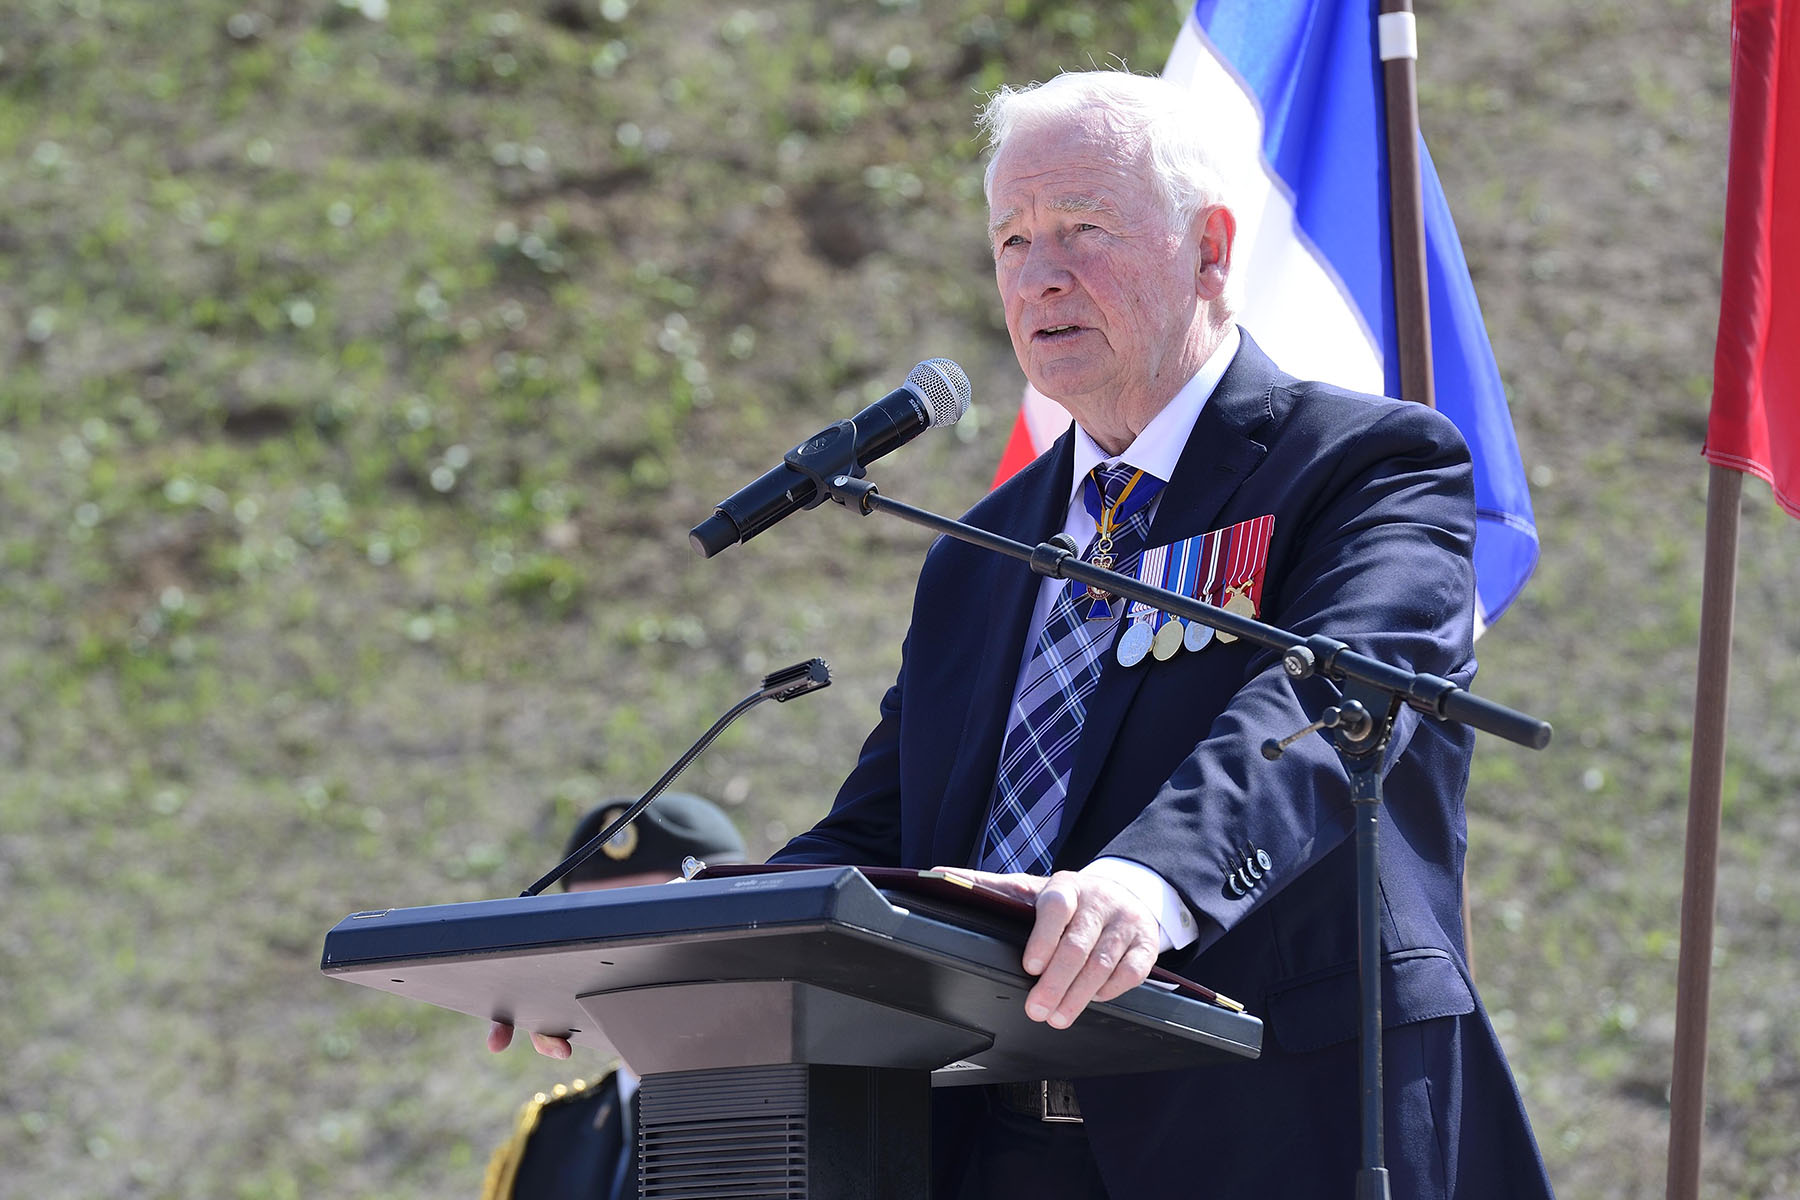 """This memorial is the result of the vision and dedication of a small team of volunteers,"" said His Excellency. ""For the last five years, they have given so much of themselves to create this memorial. As patron of the Hill 70 project, I thank them deeply for their efforts."""